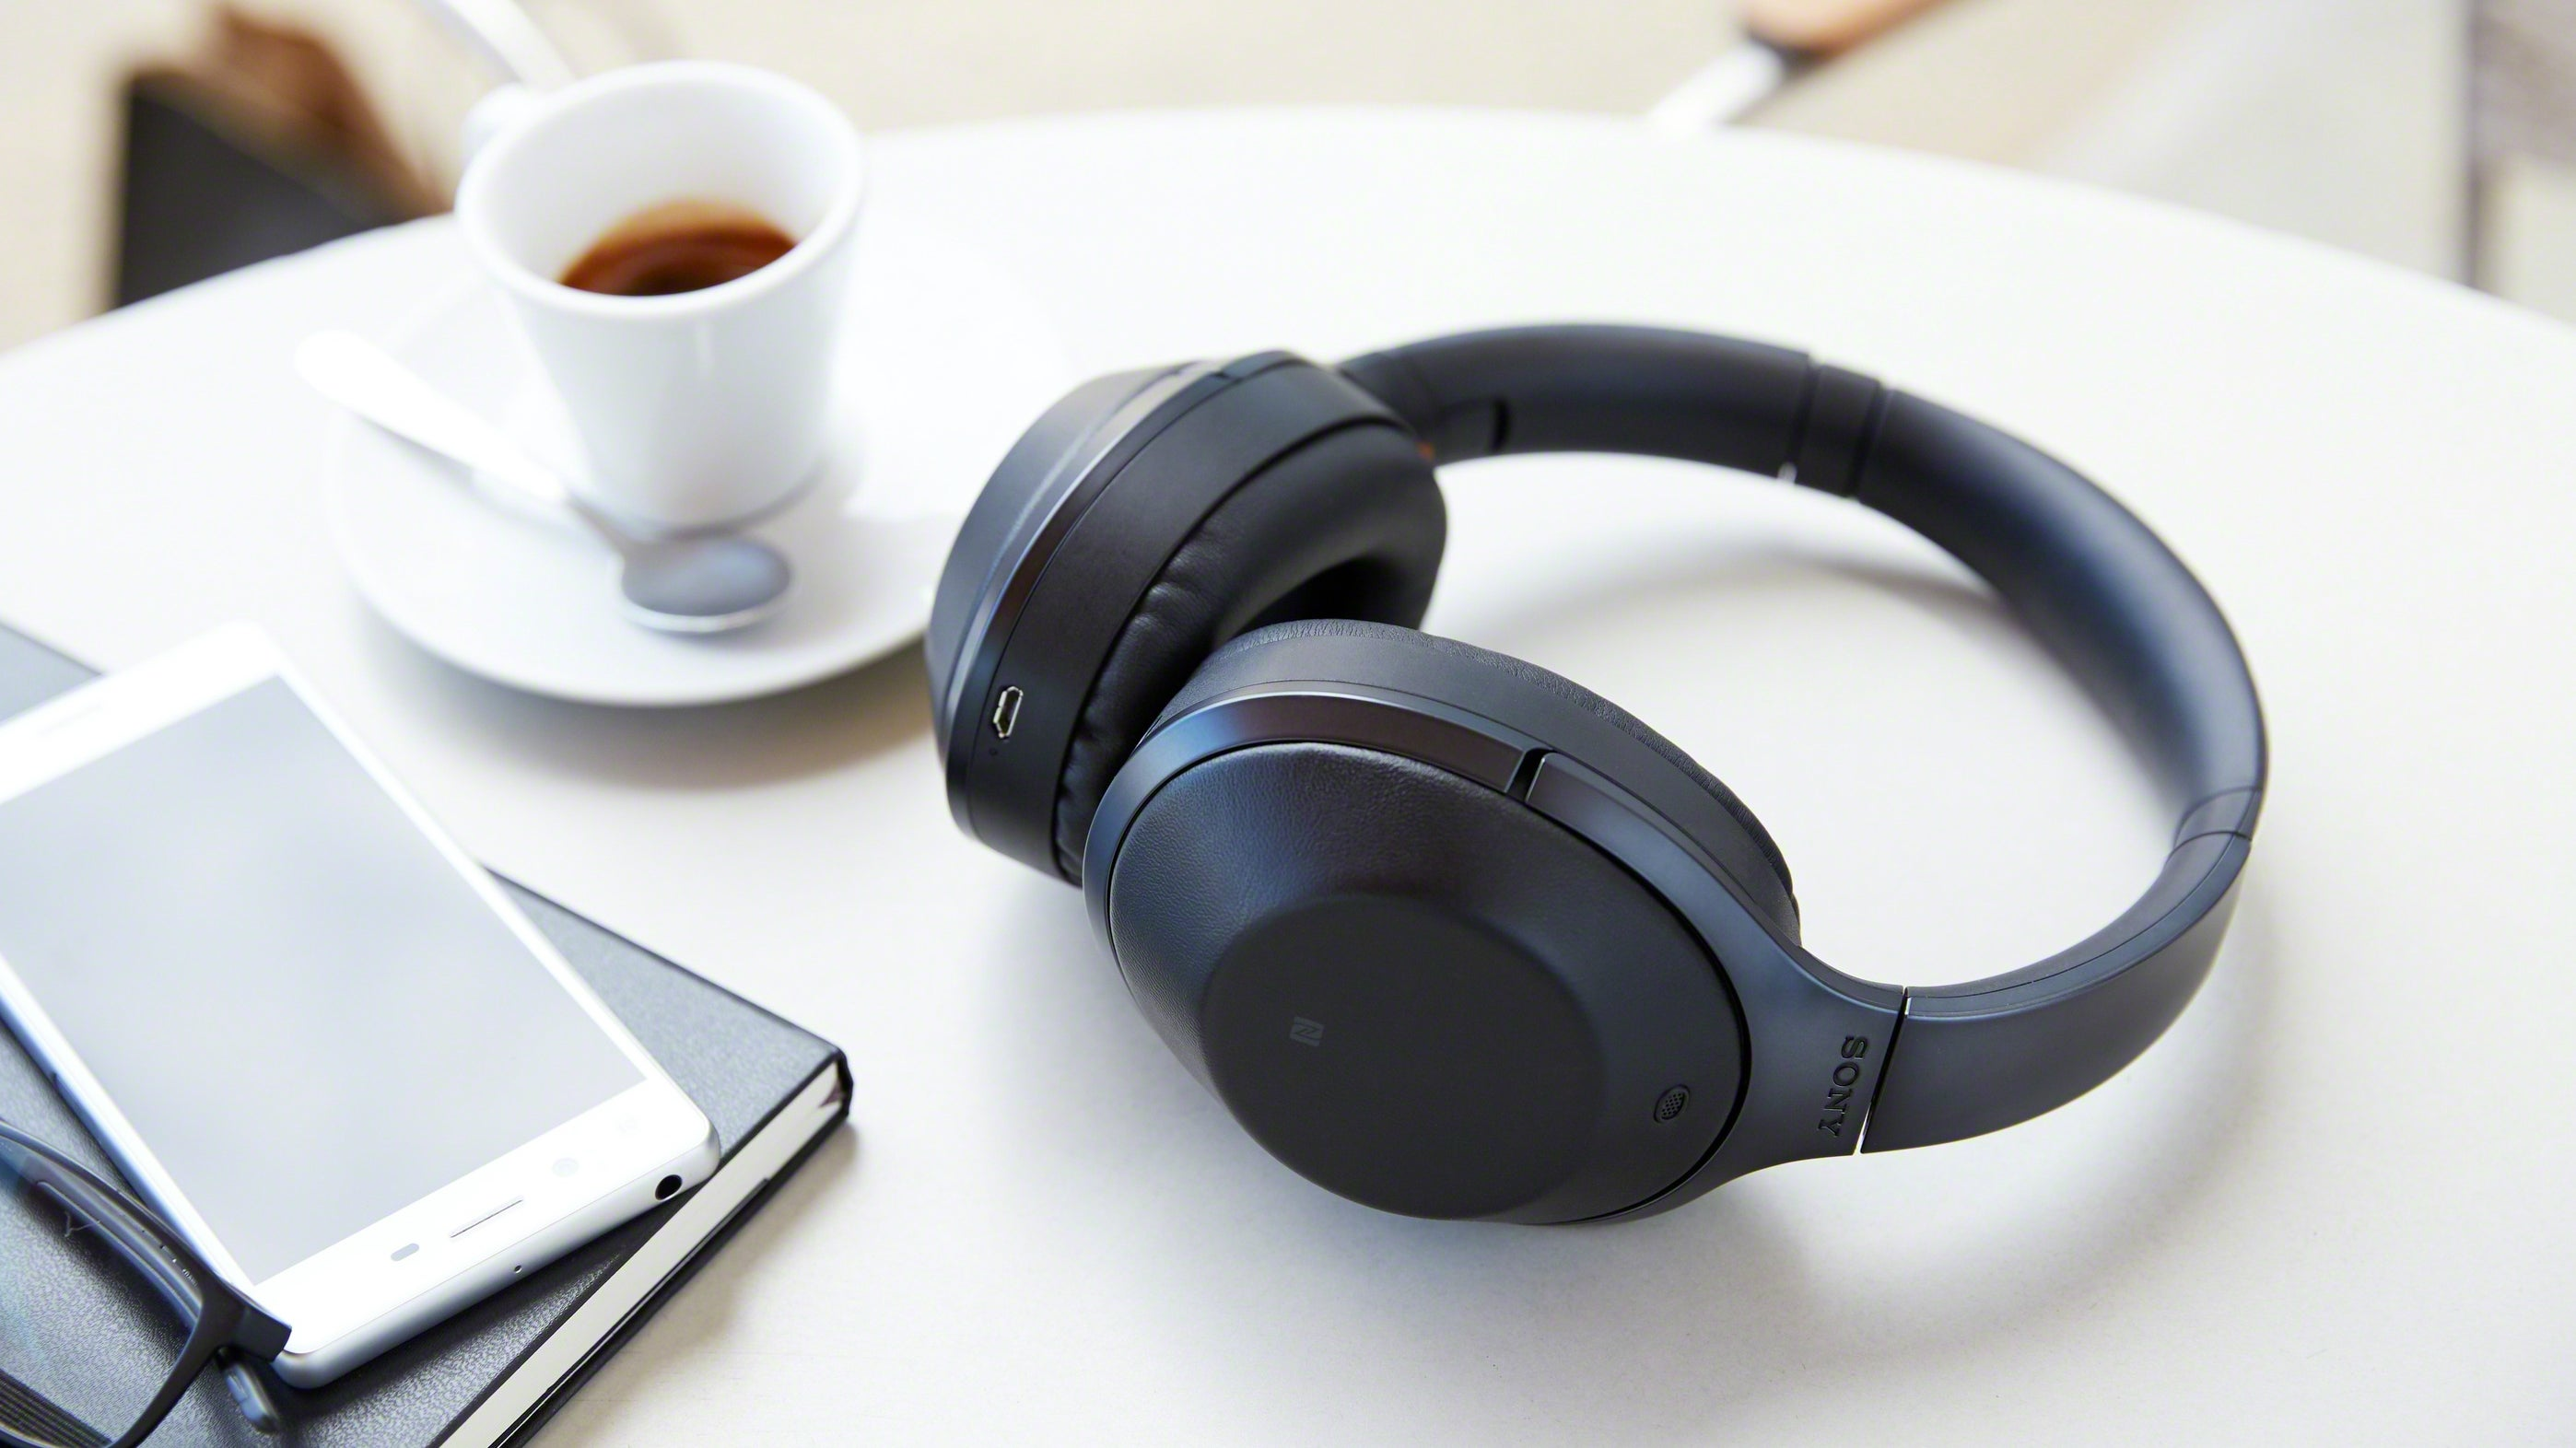 e58d4a9ddf5 Sony MDR-1000X Review | Trusted Reviews